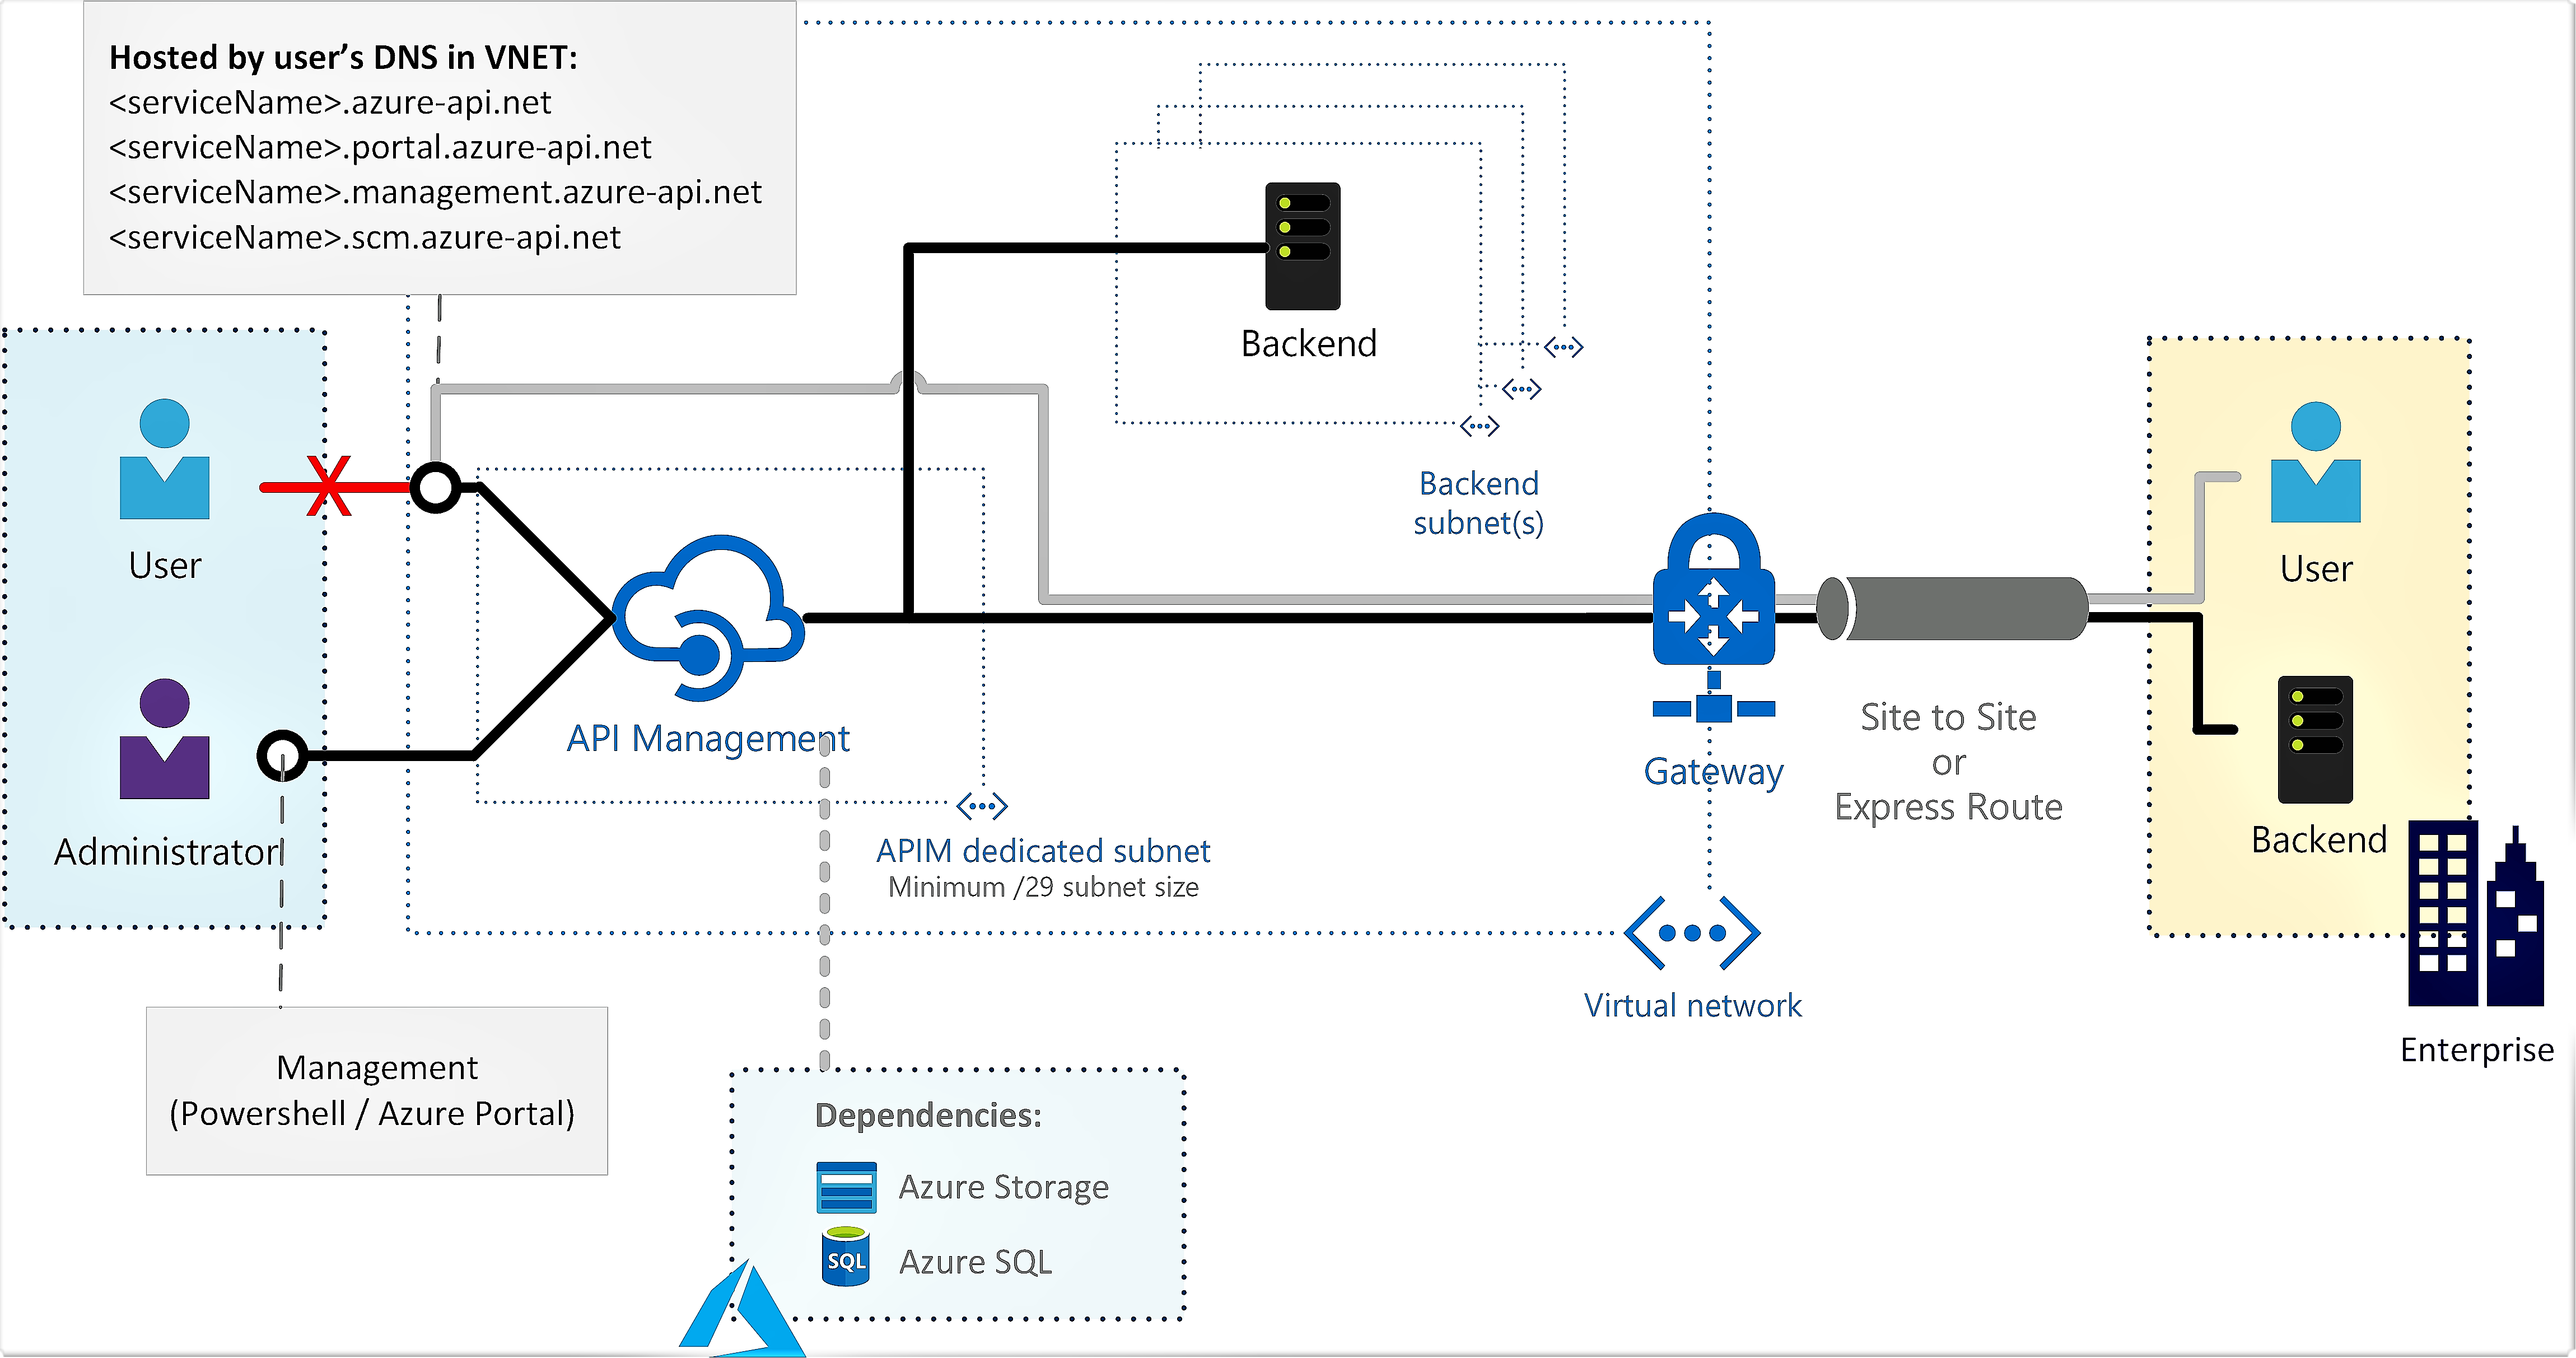 How to use Azure API Management with virtual networks | Microsoft Docs